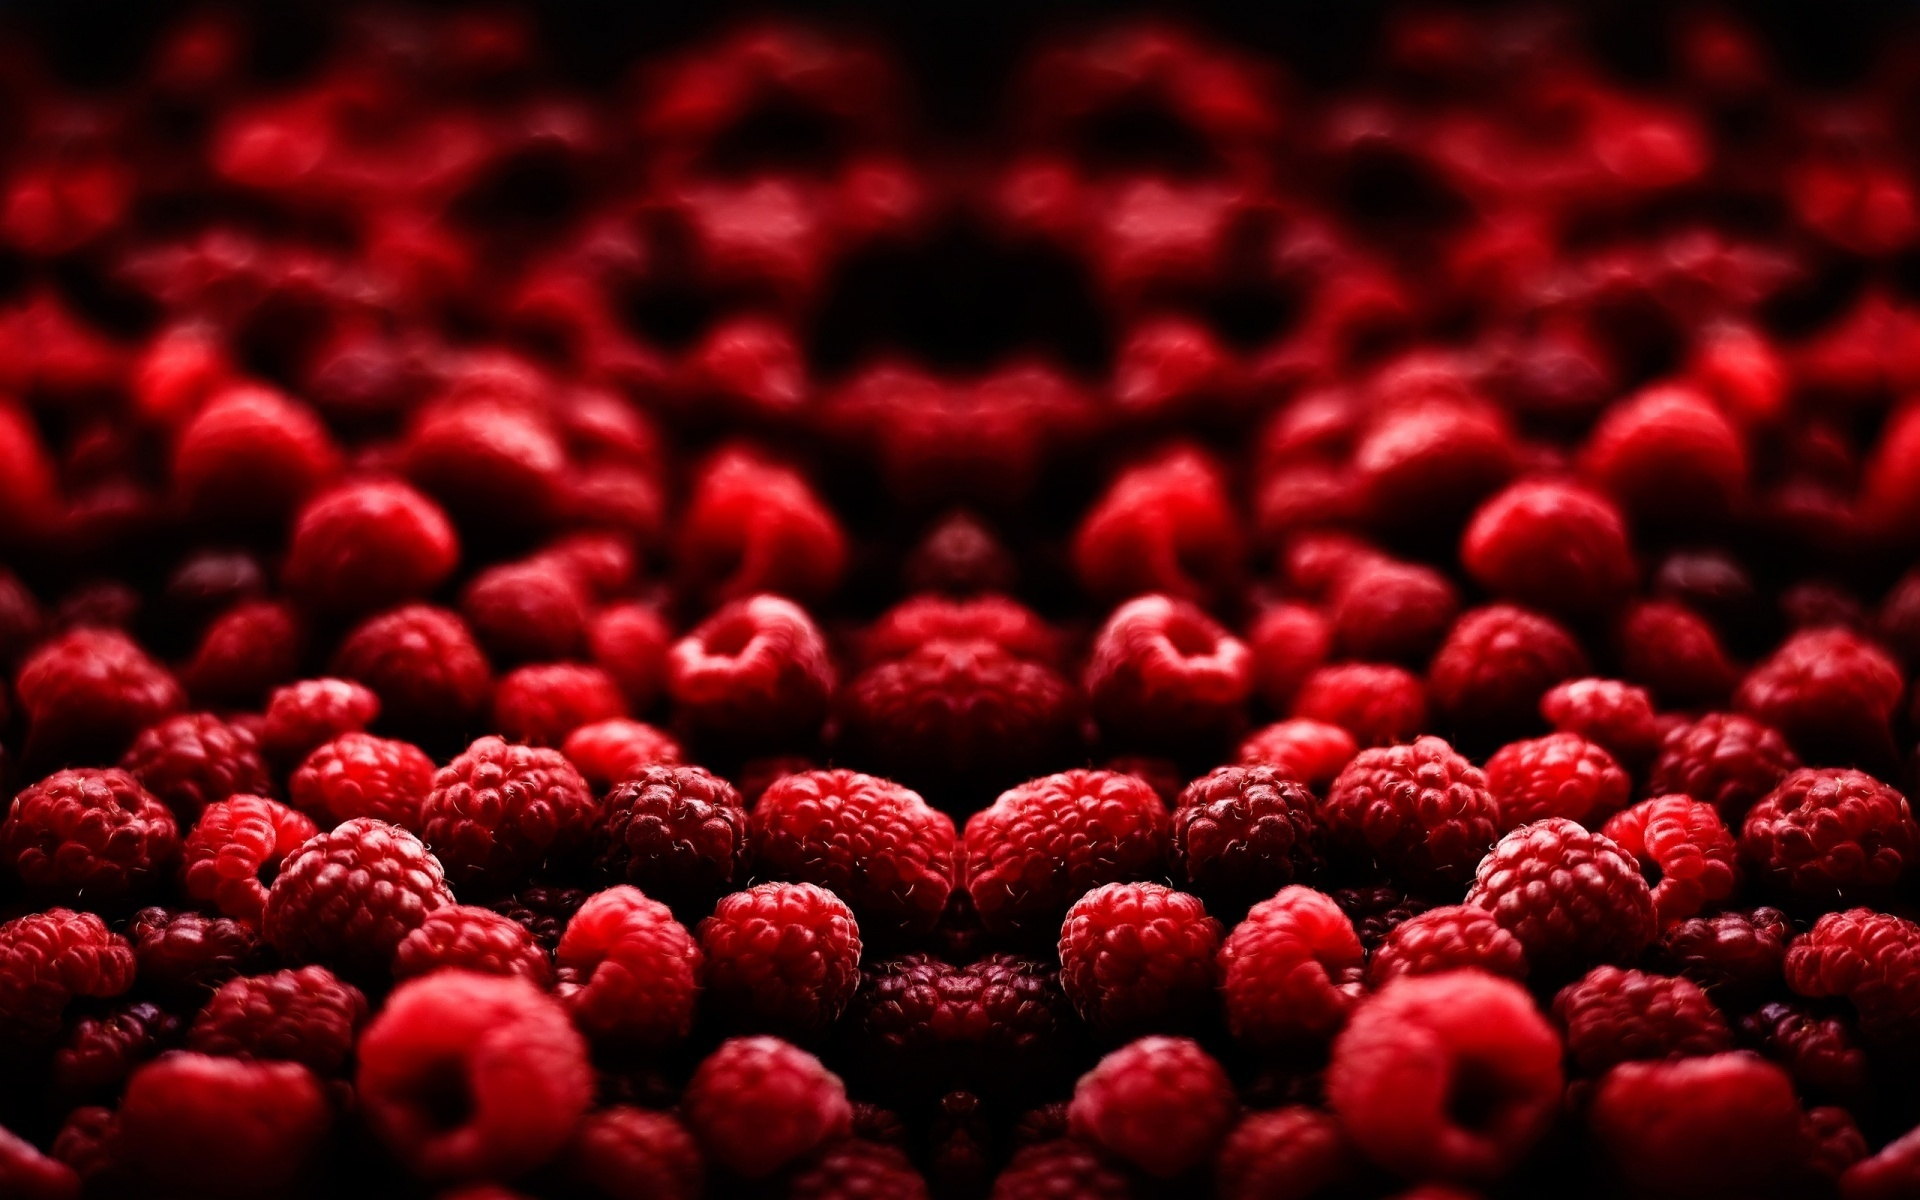 Red Berries Photos - Red Berries Photos